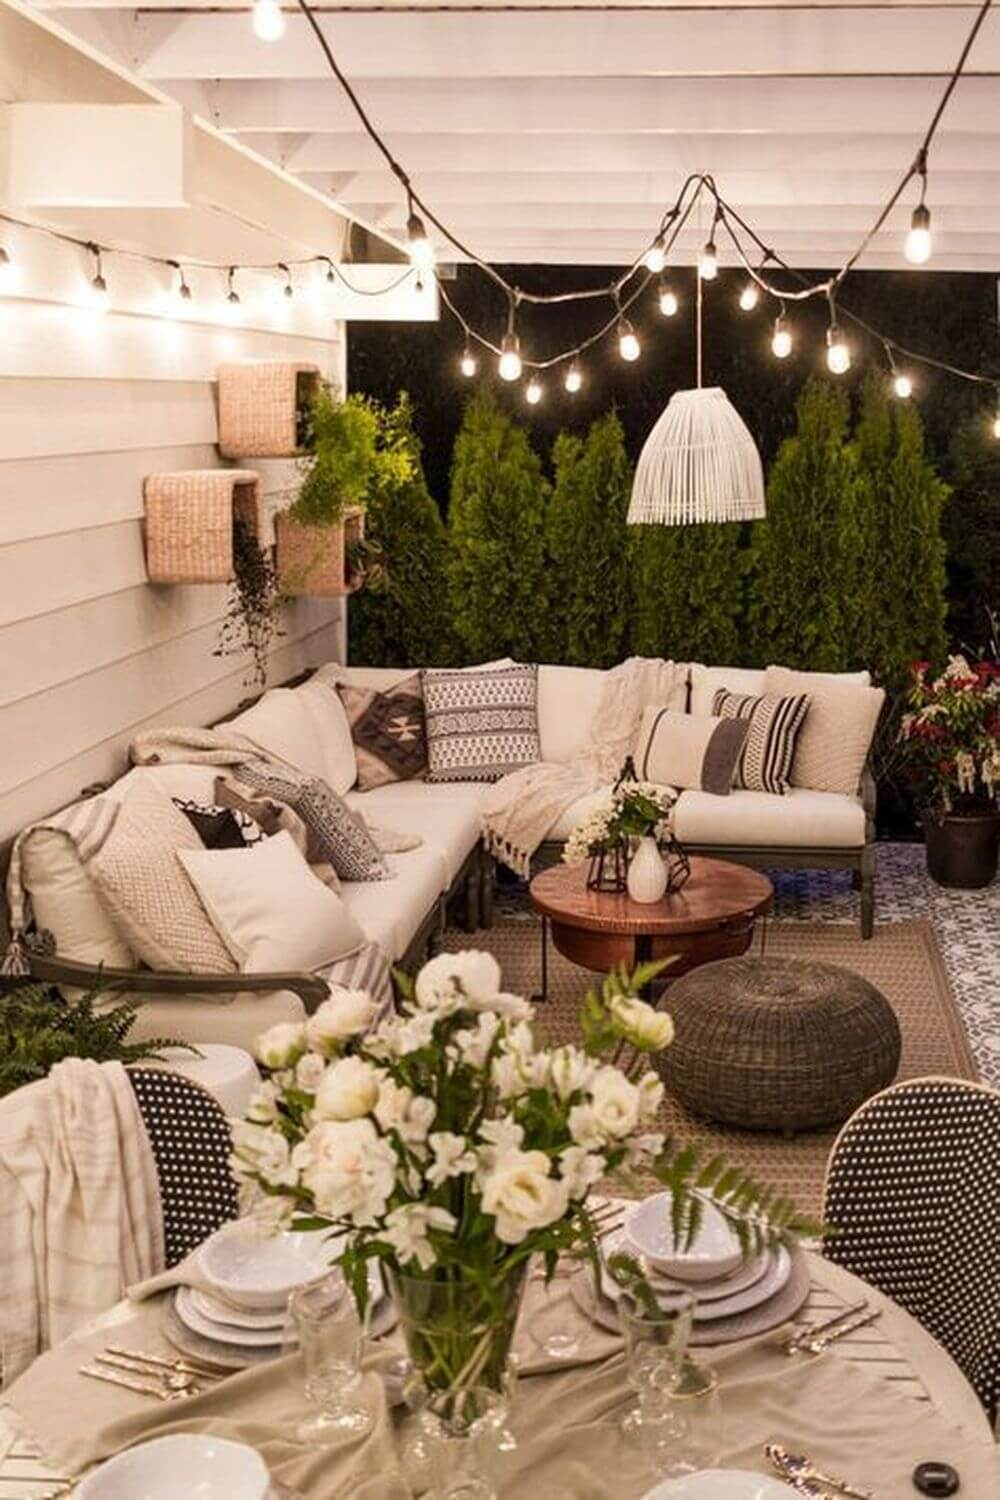 33 Best Outdoor Living Space Ideas and Designs for 2020 on Garden Living Space id=42852